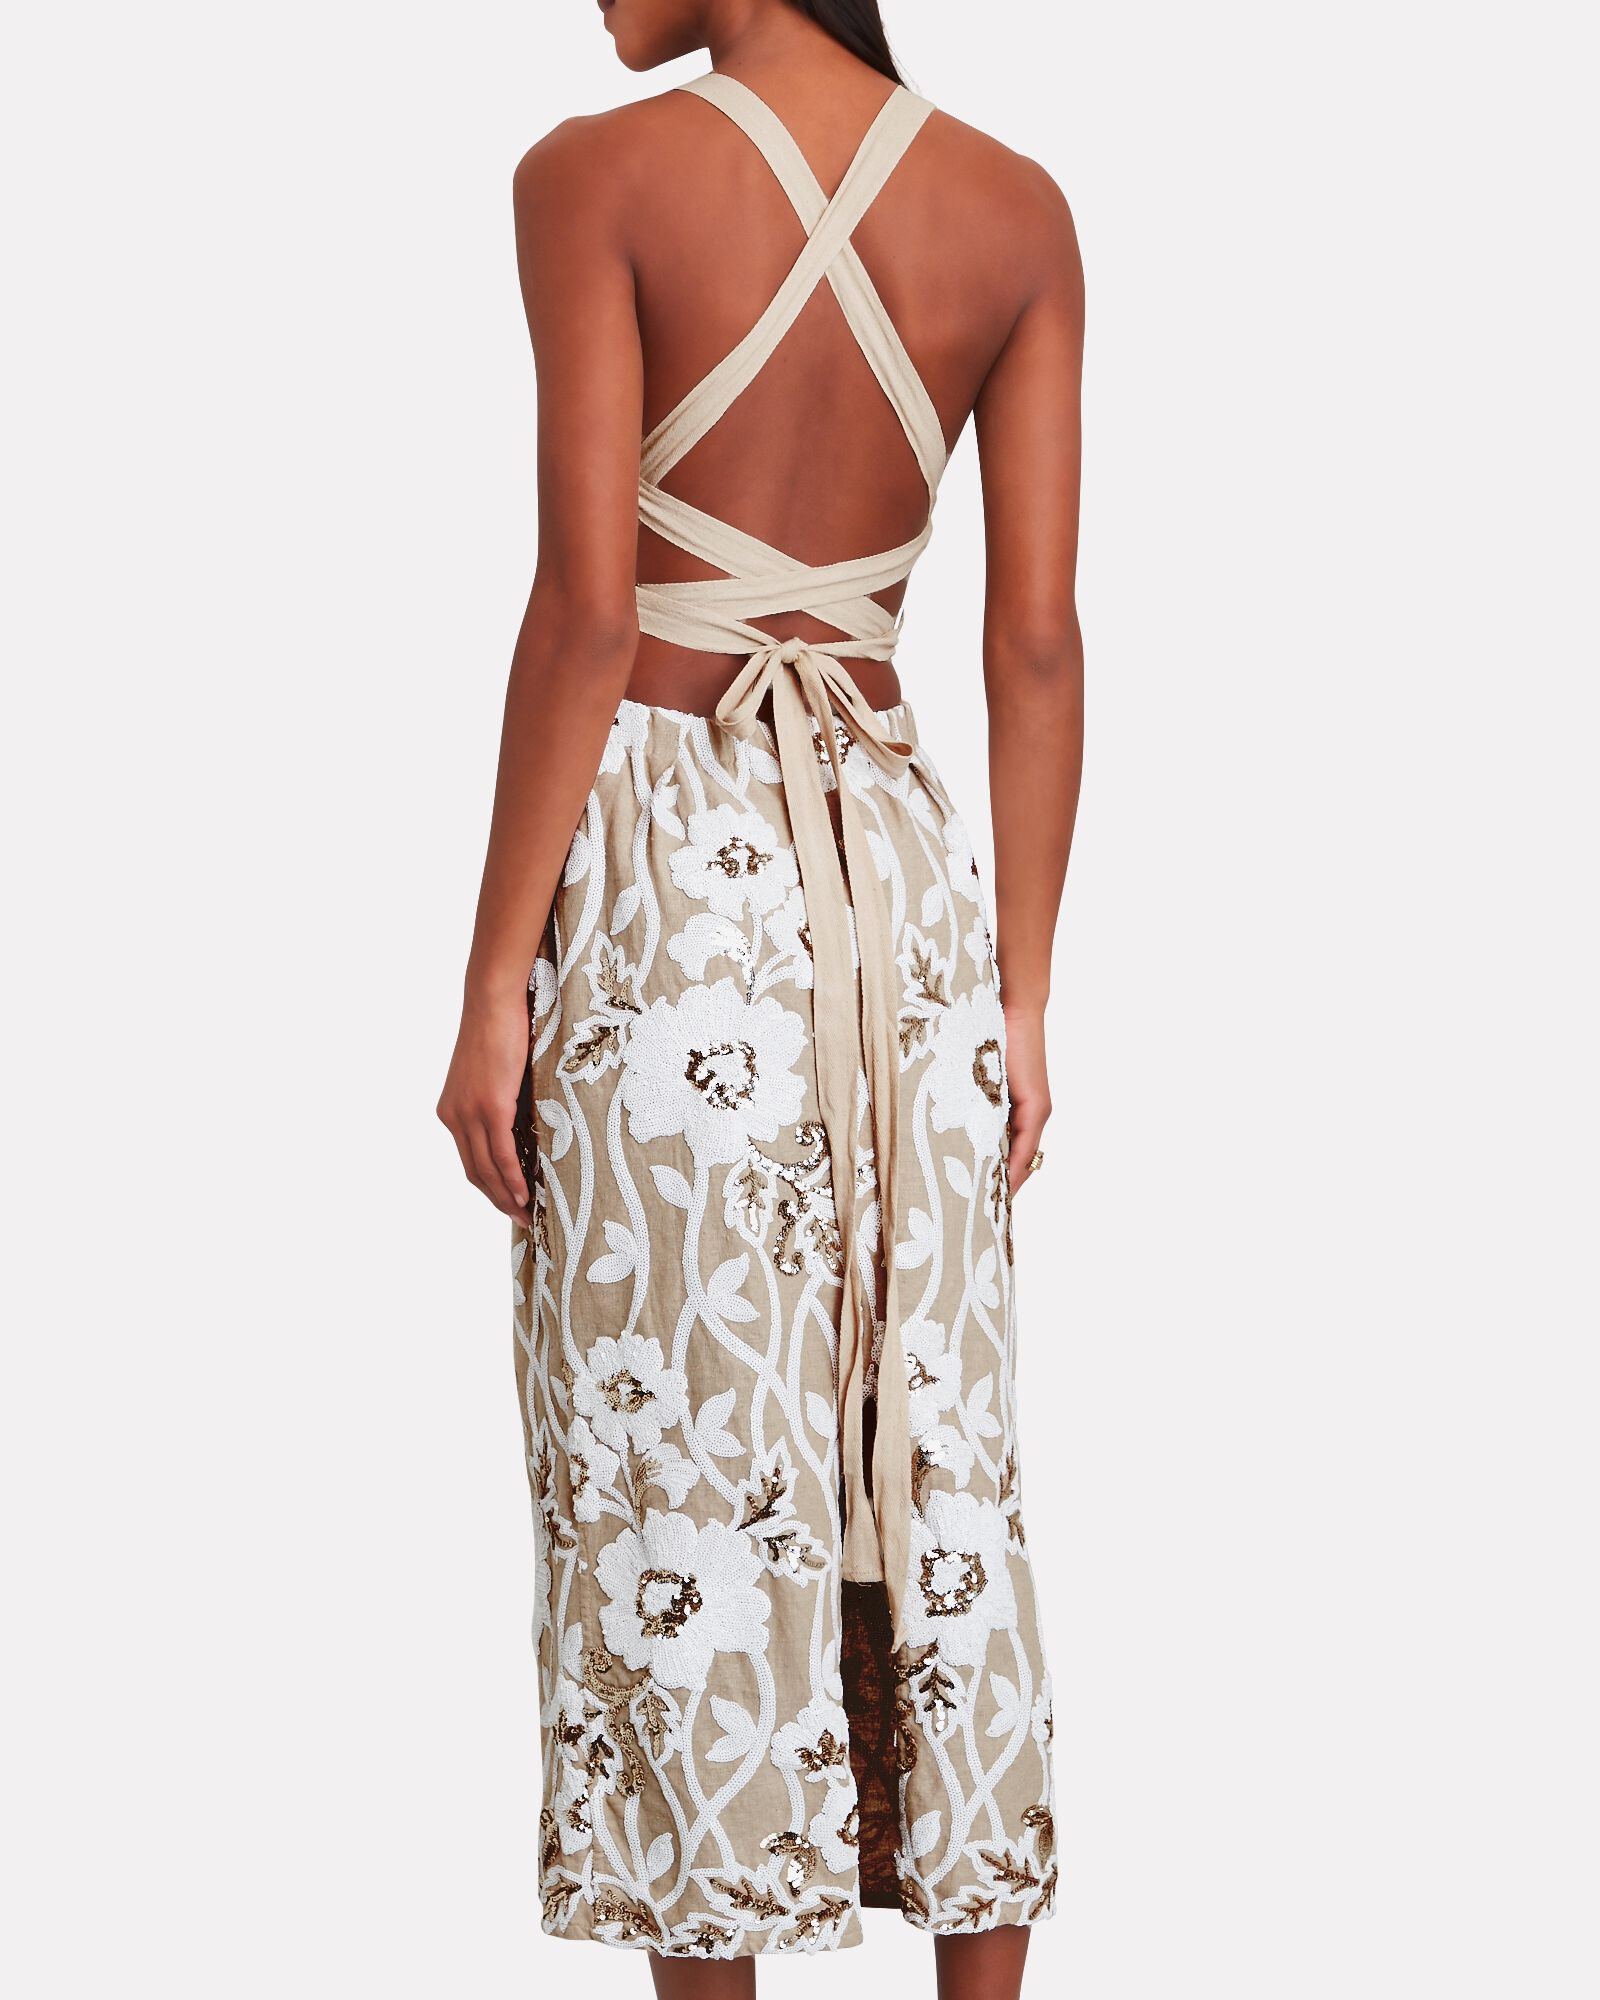 Lainey Embroidered Floral Midi Dress, CREAM/WHITE, hi-res